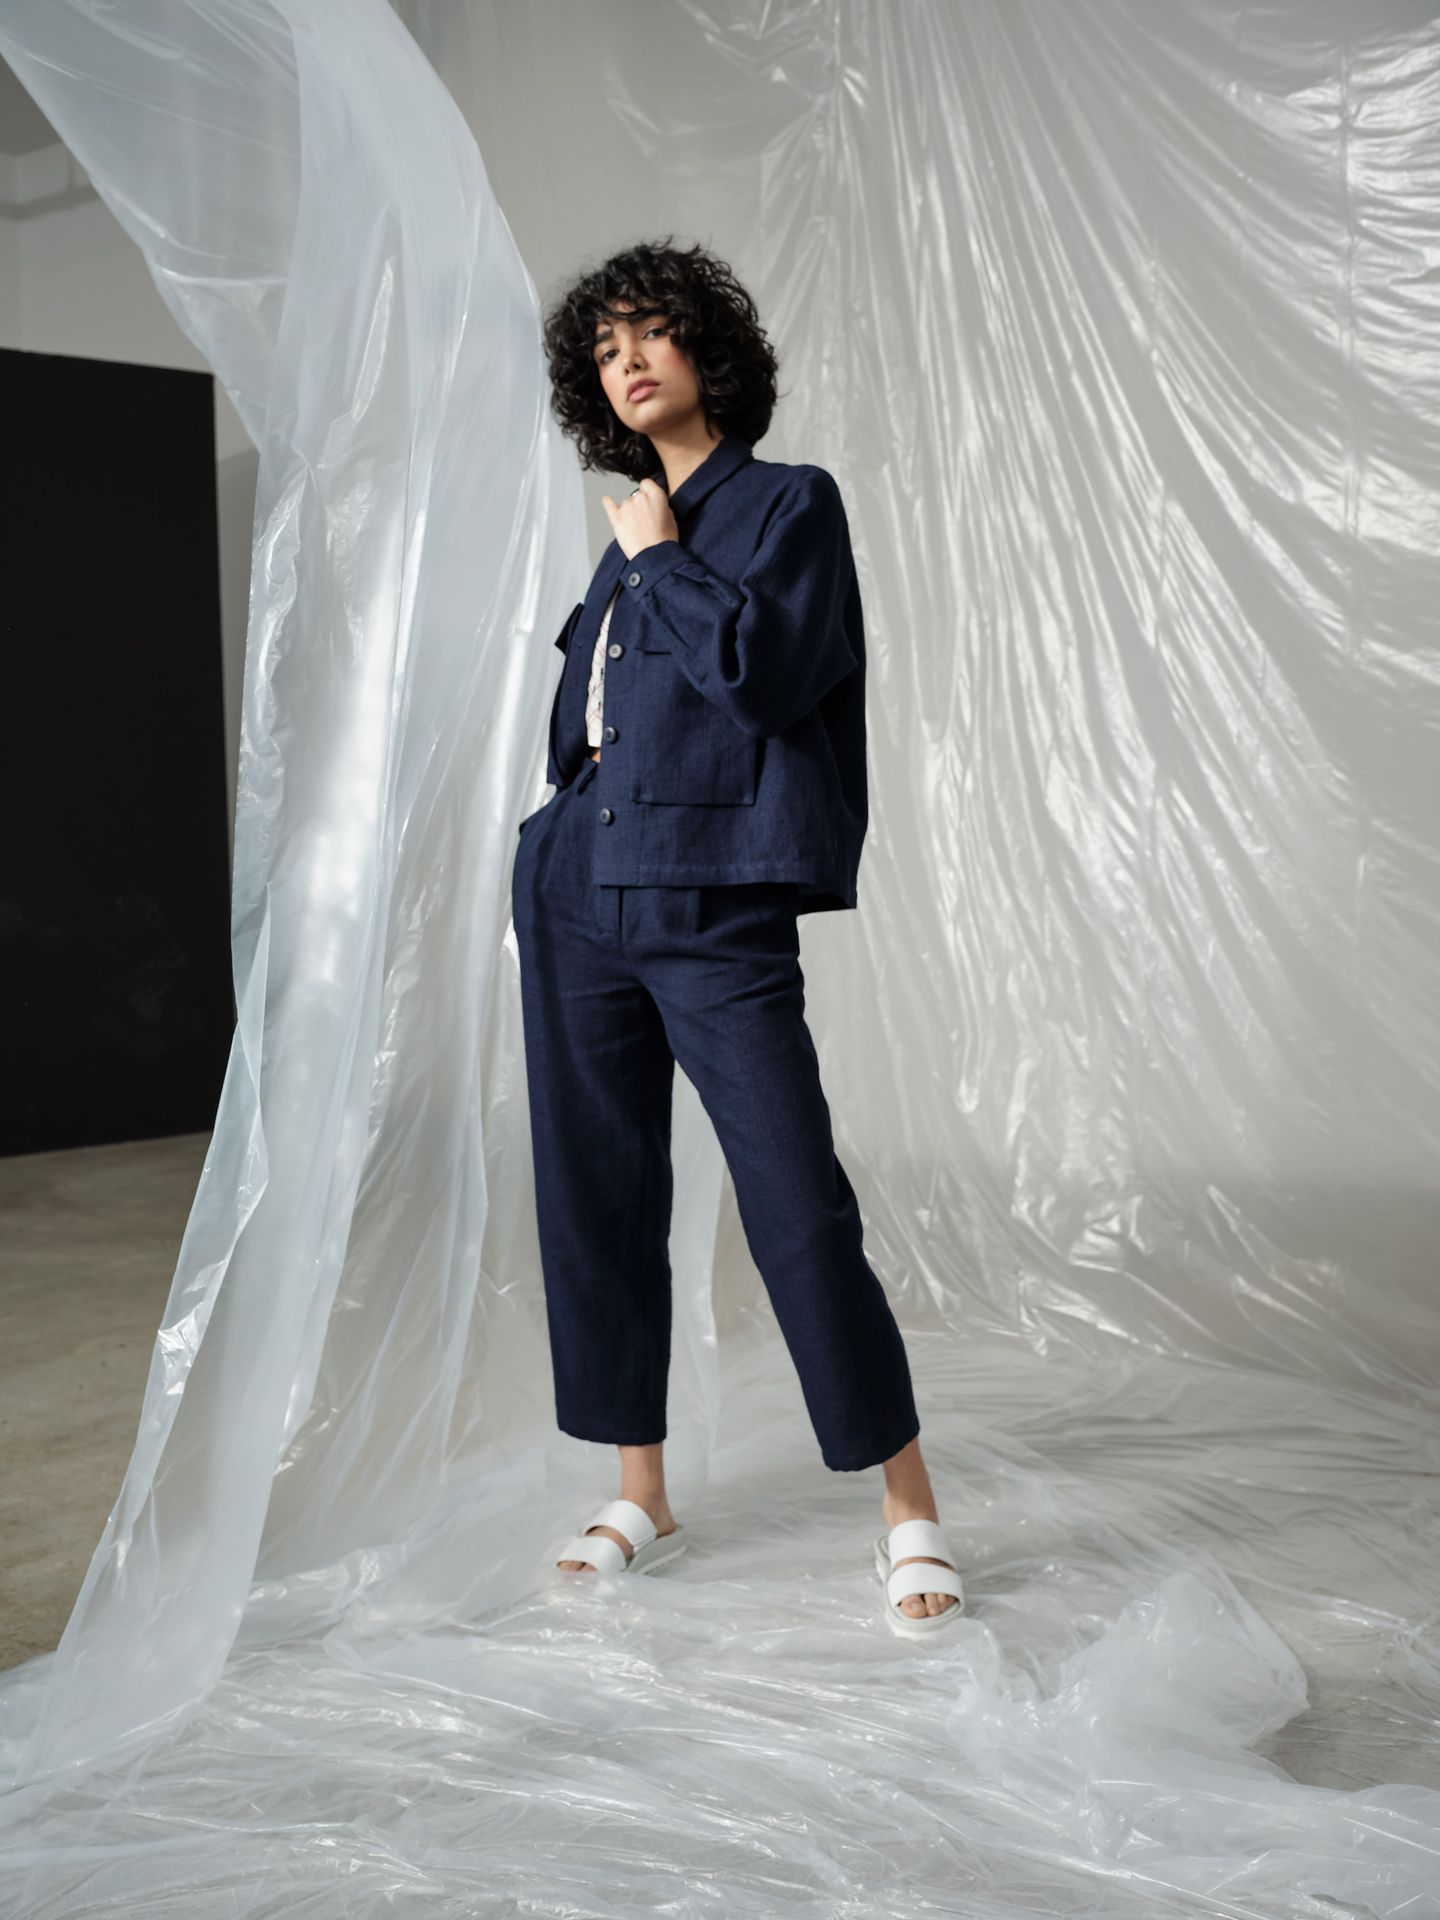 curly haired female model wearing dark blue linen ensemble standing looking at camera photographed by Maxyme G Delisle with artistic direction and styling by Studio TB